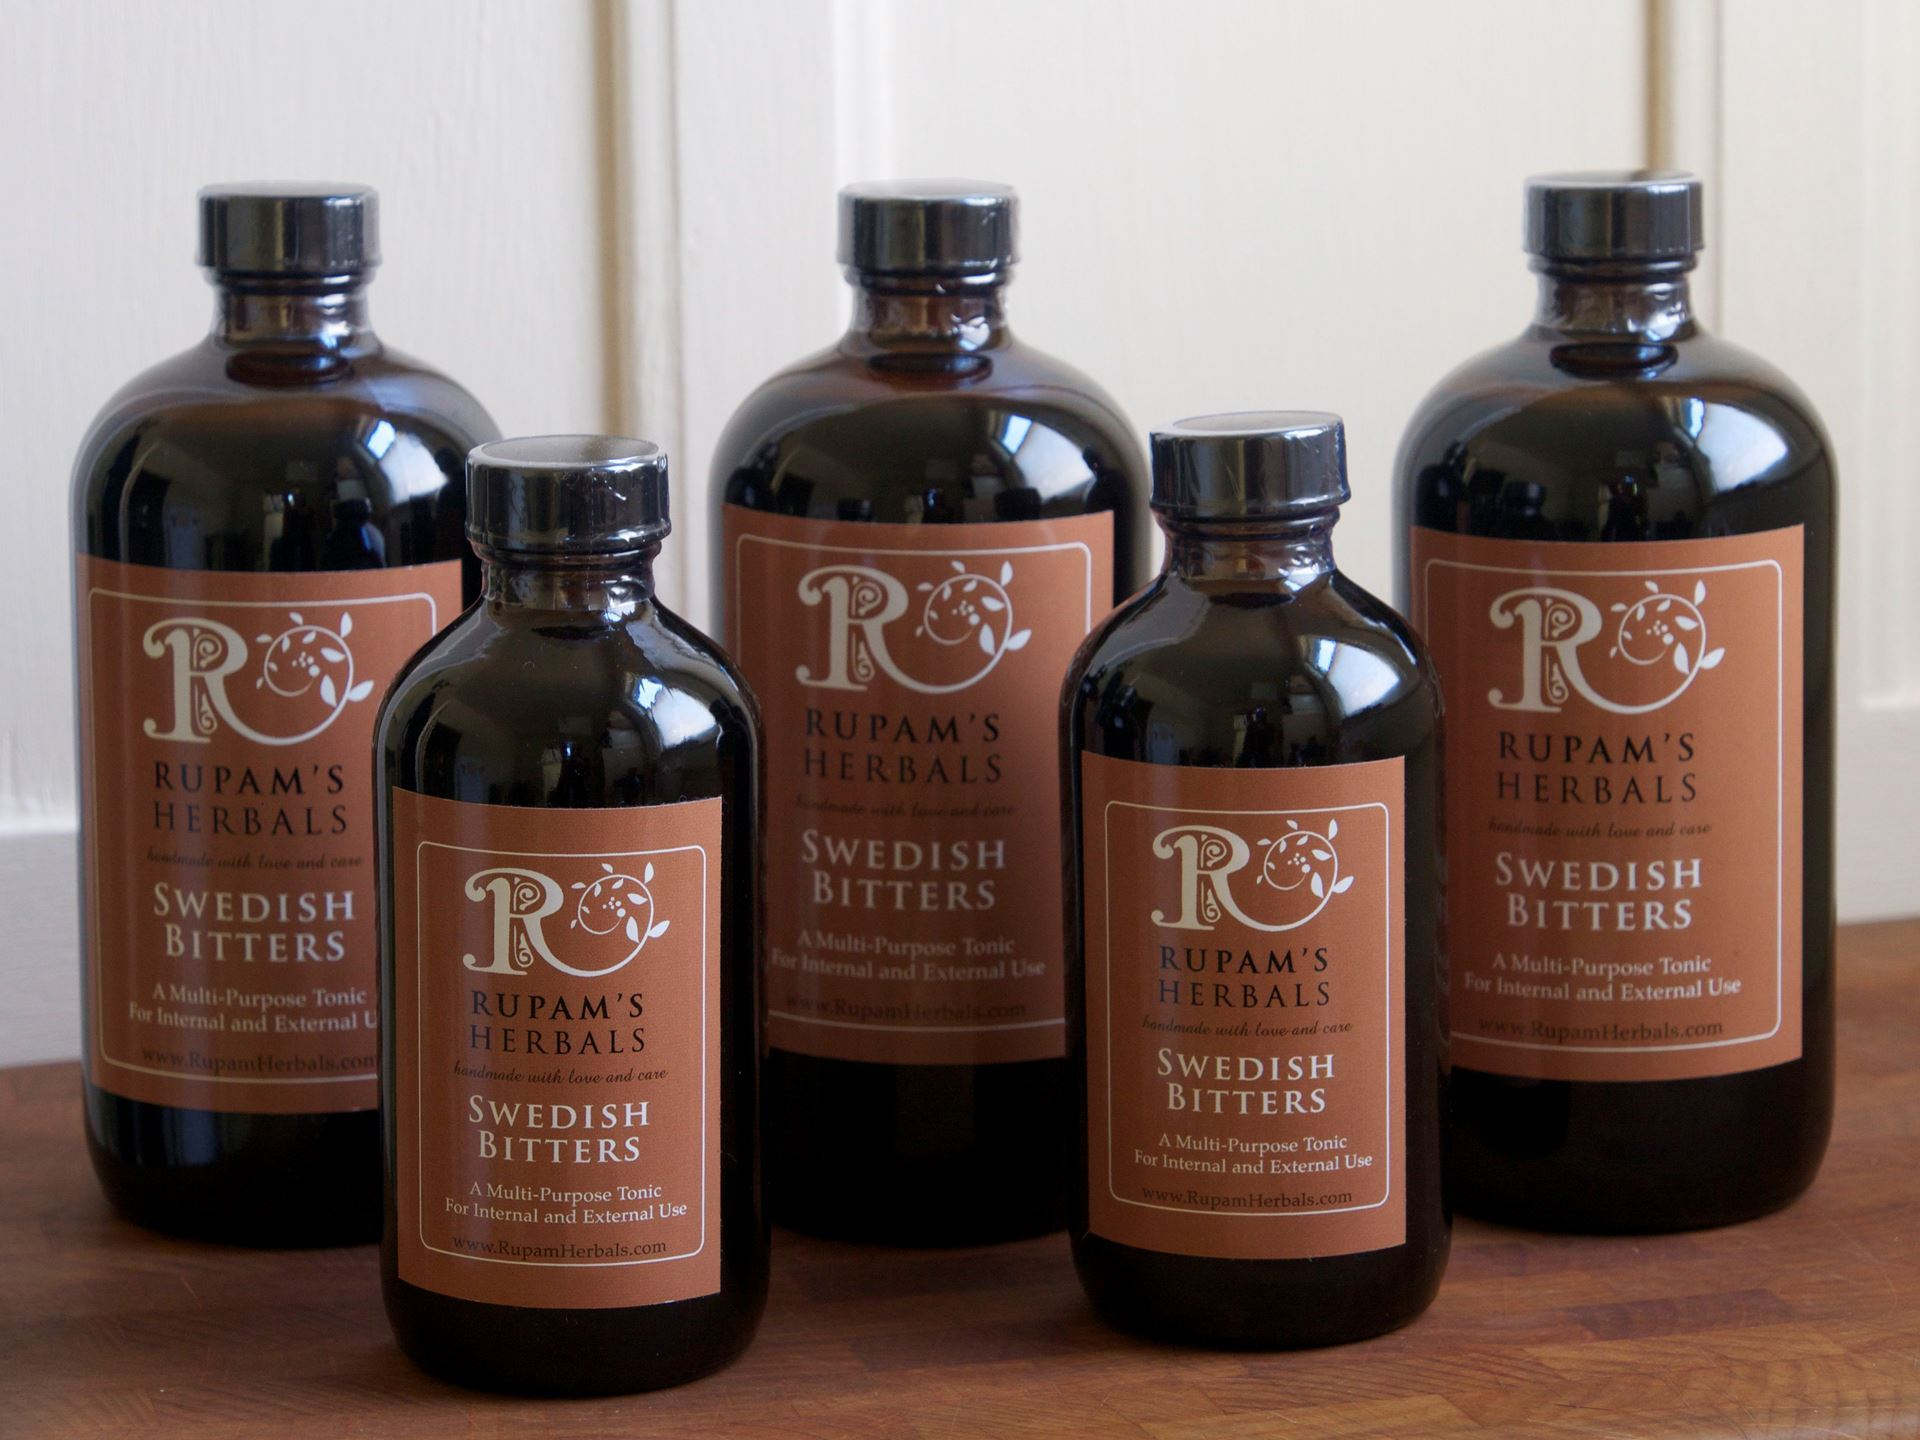 Picture of Rupam's Herbals Swedish Bitters 16 oz.